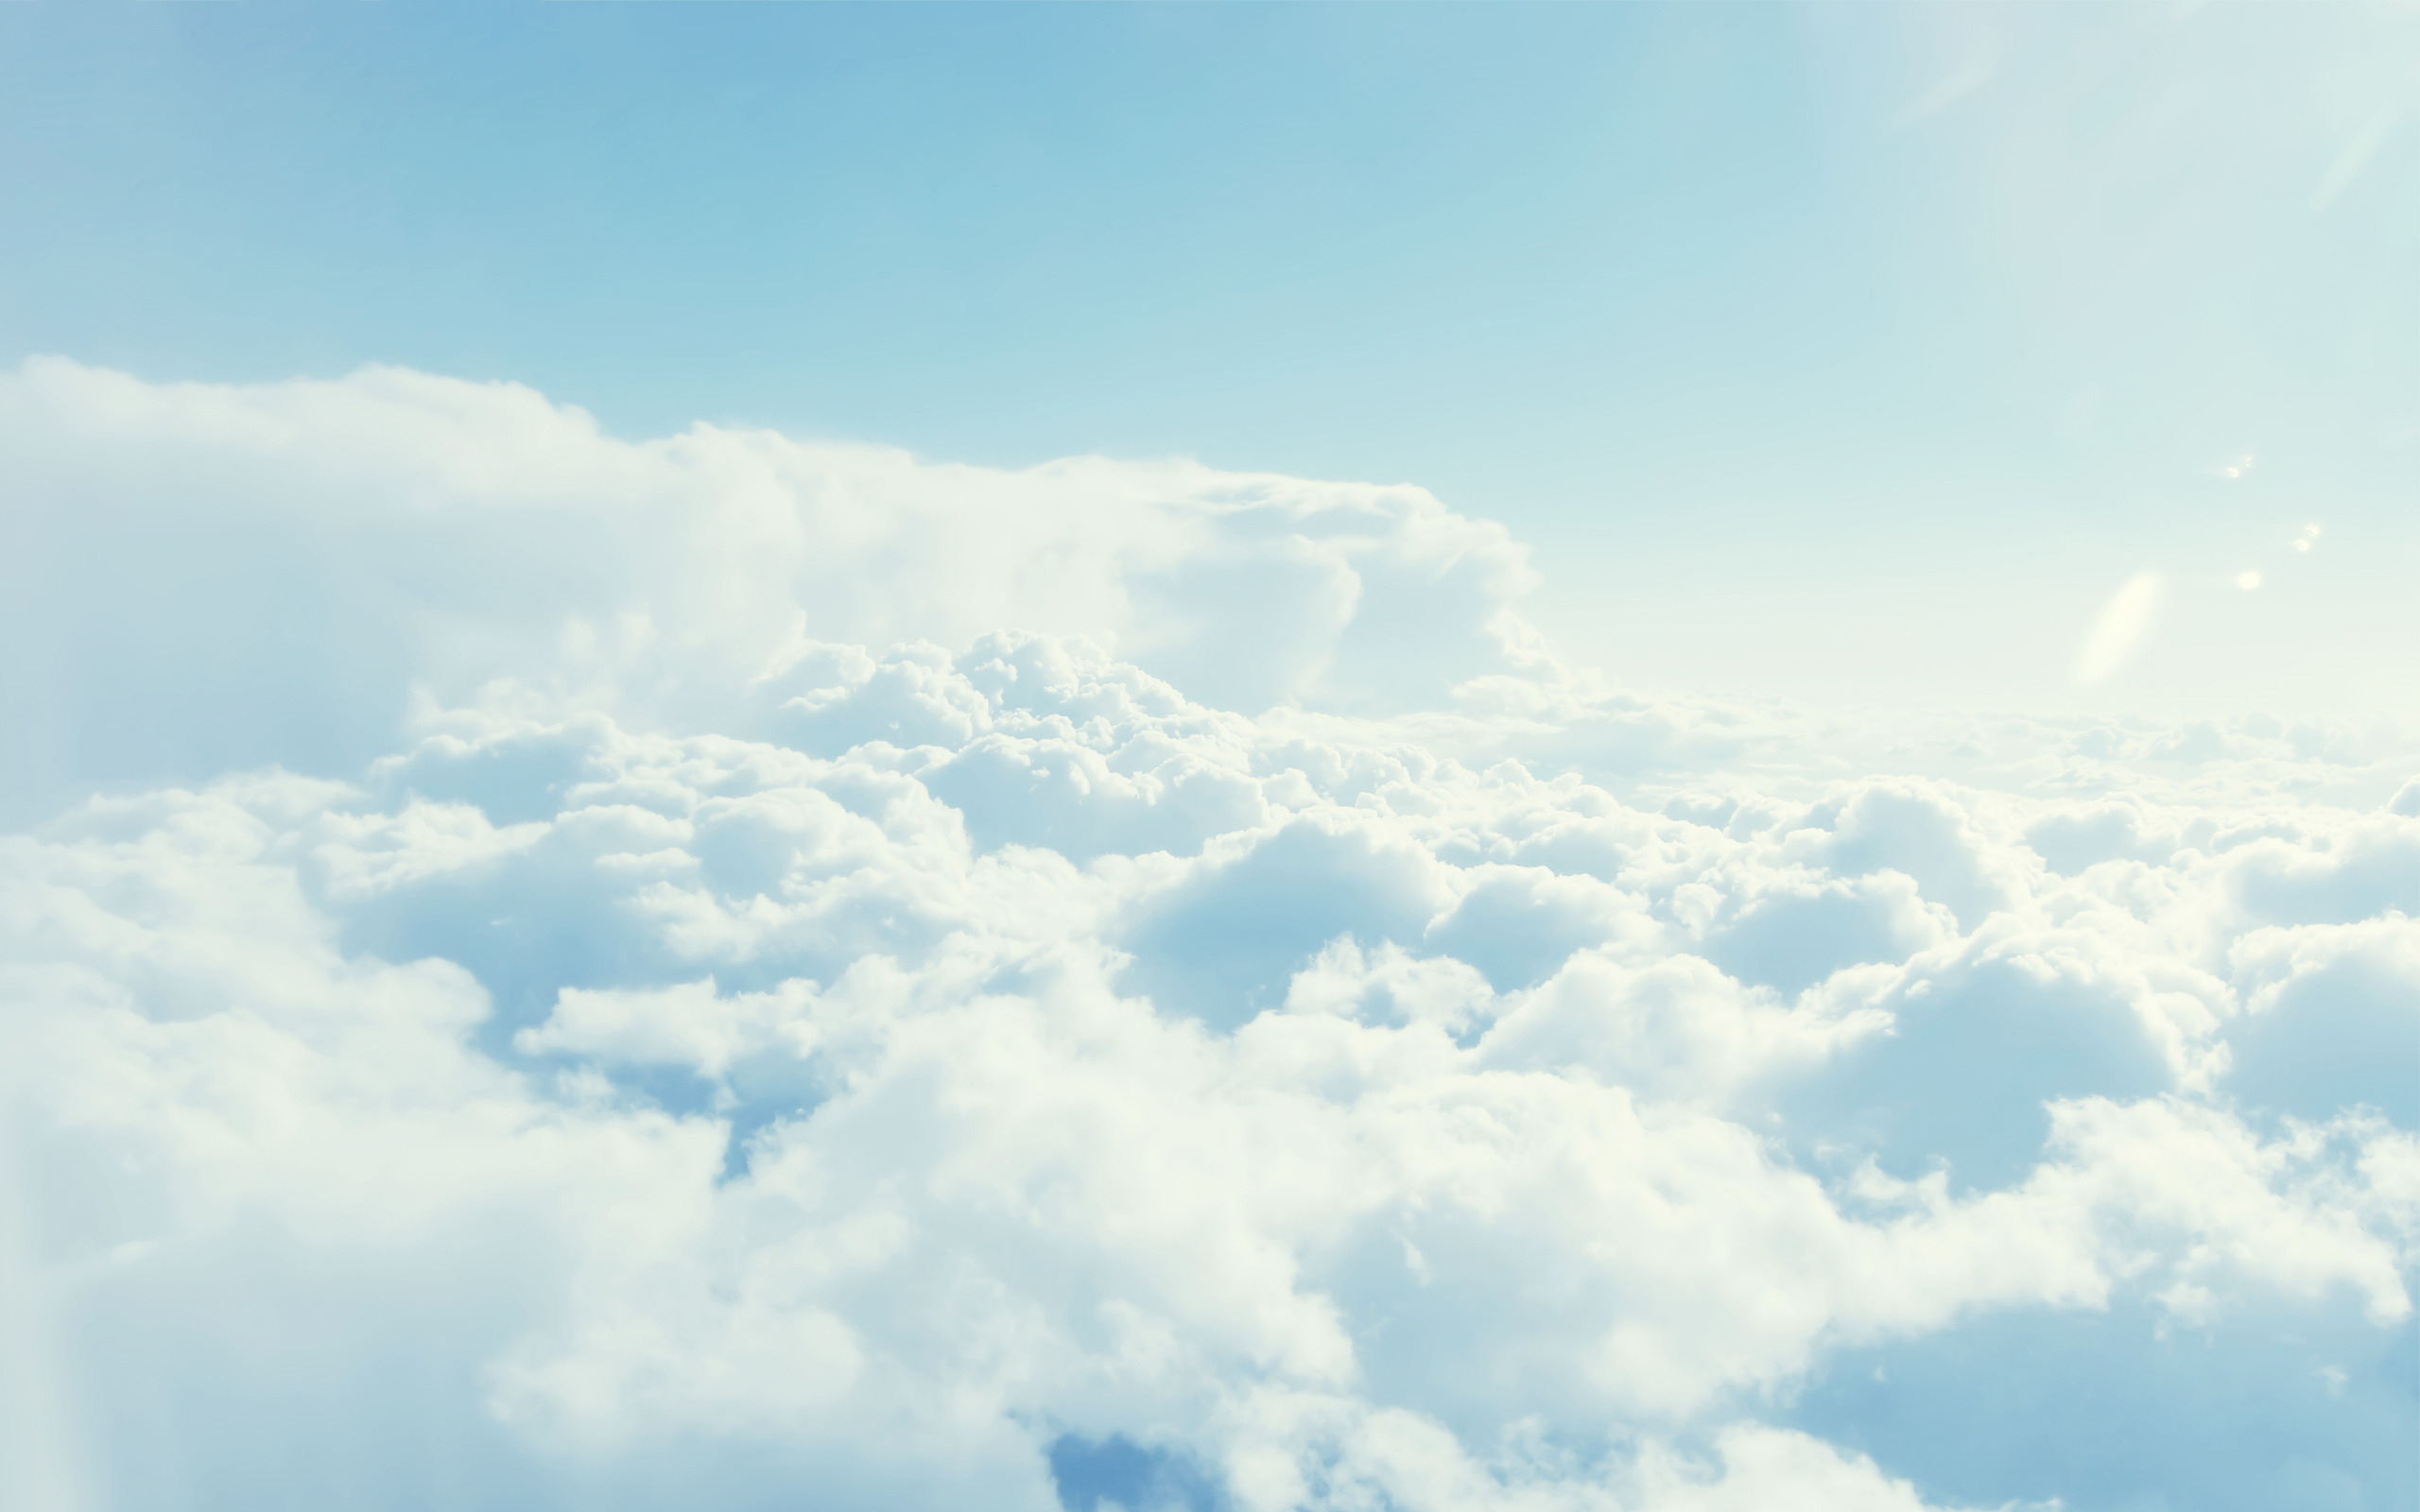 Above the Clouds wallpapers and images   wallpapers pictures photos 2560x1600